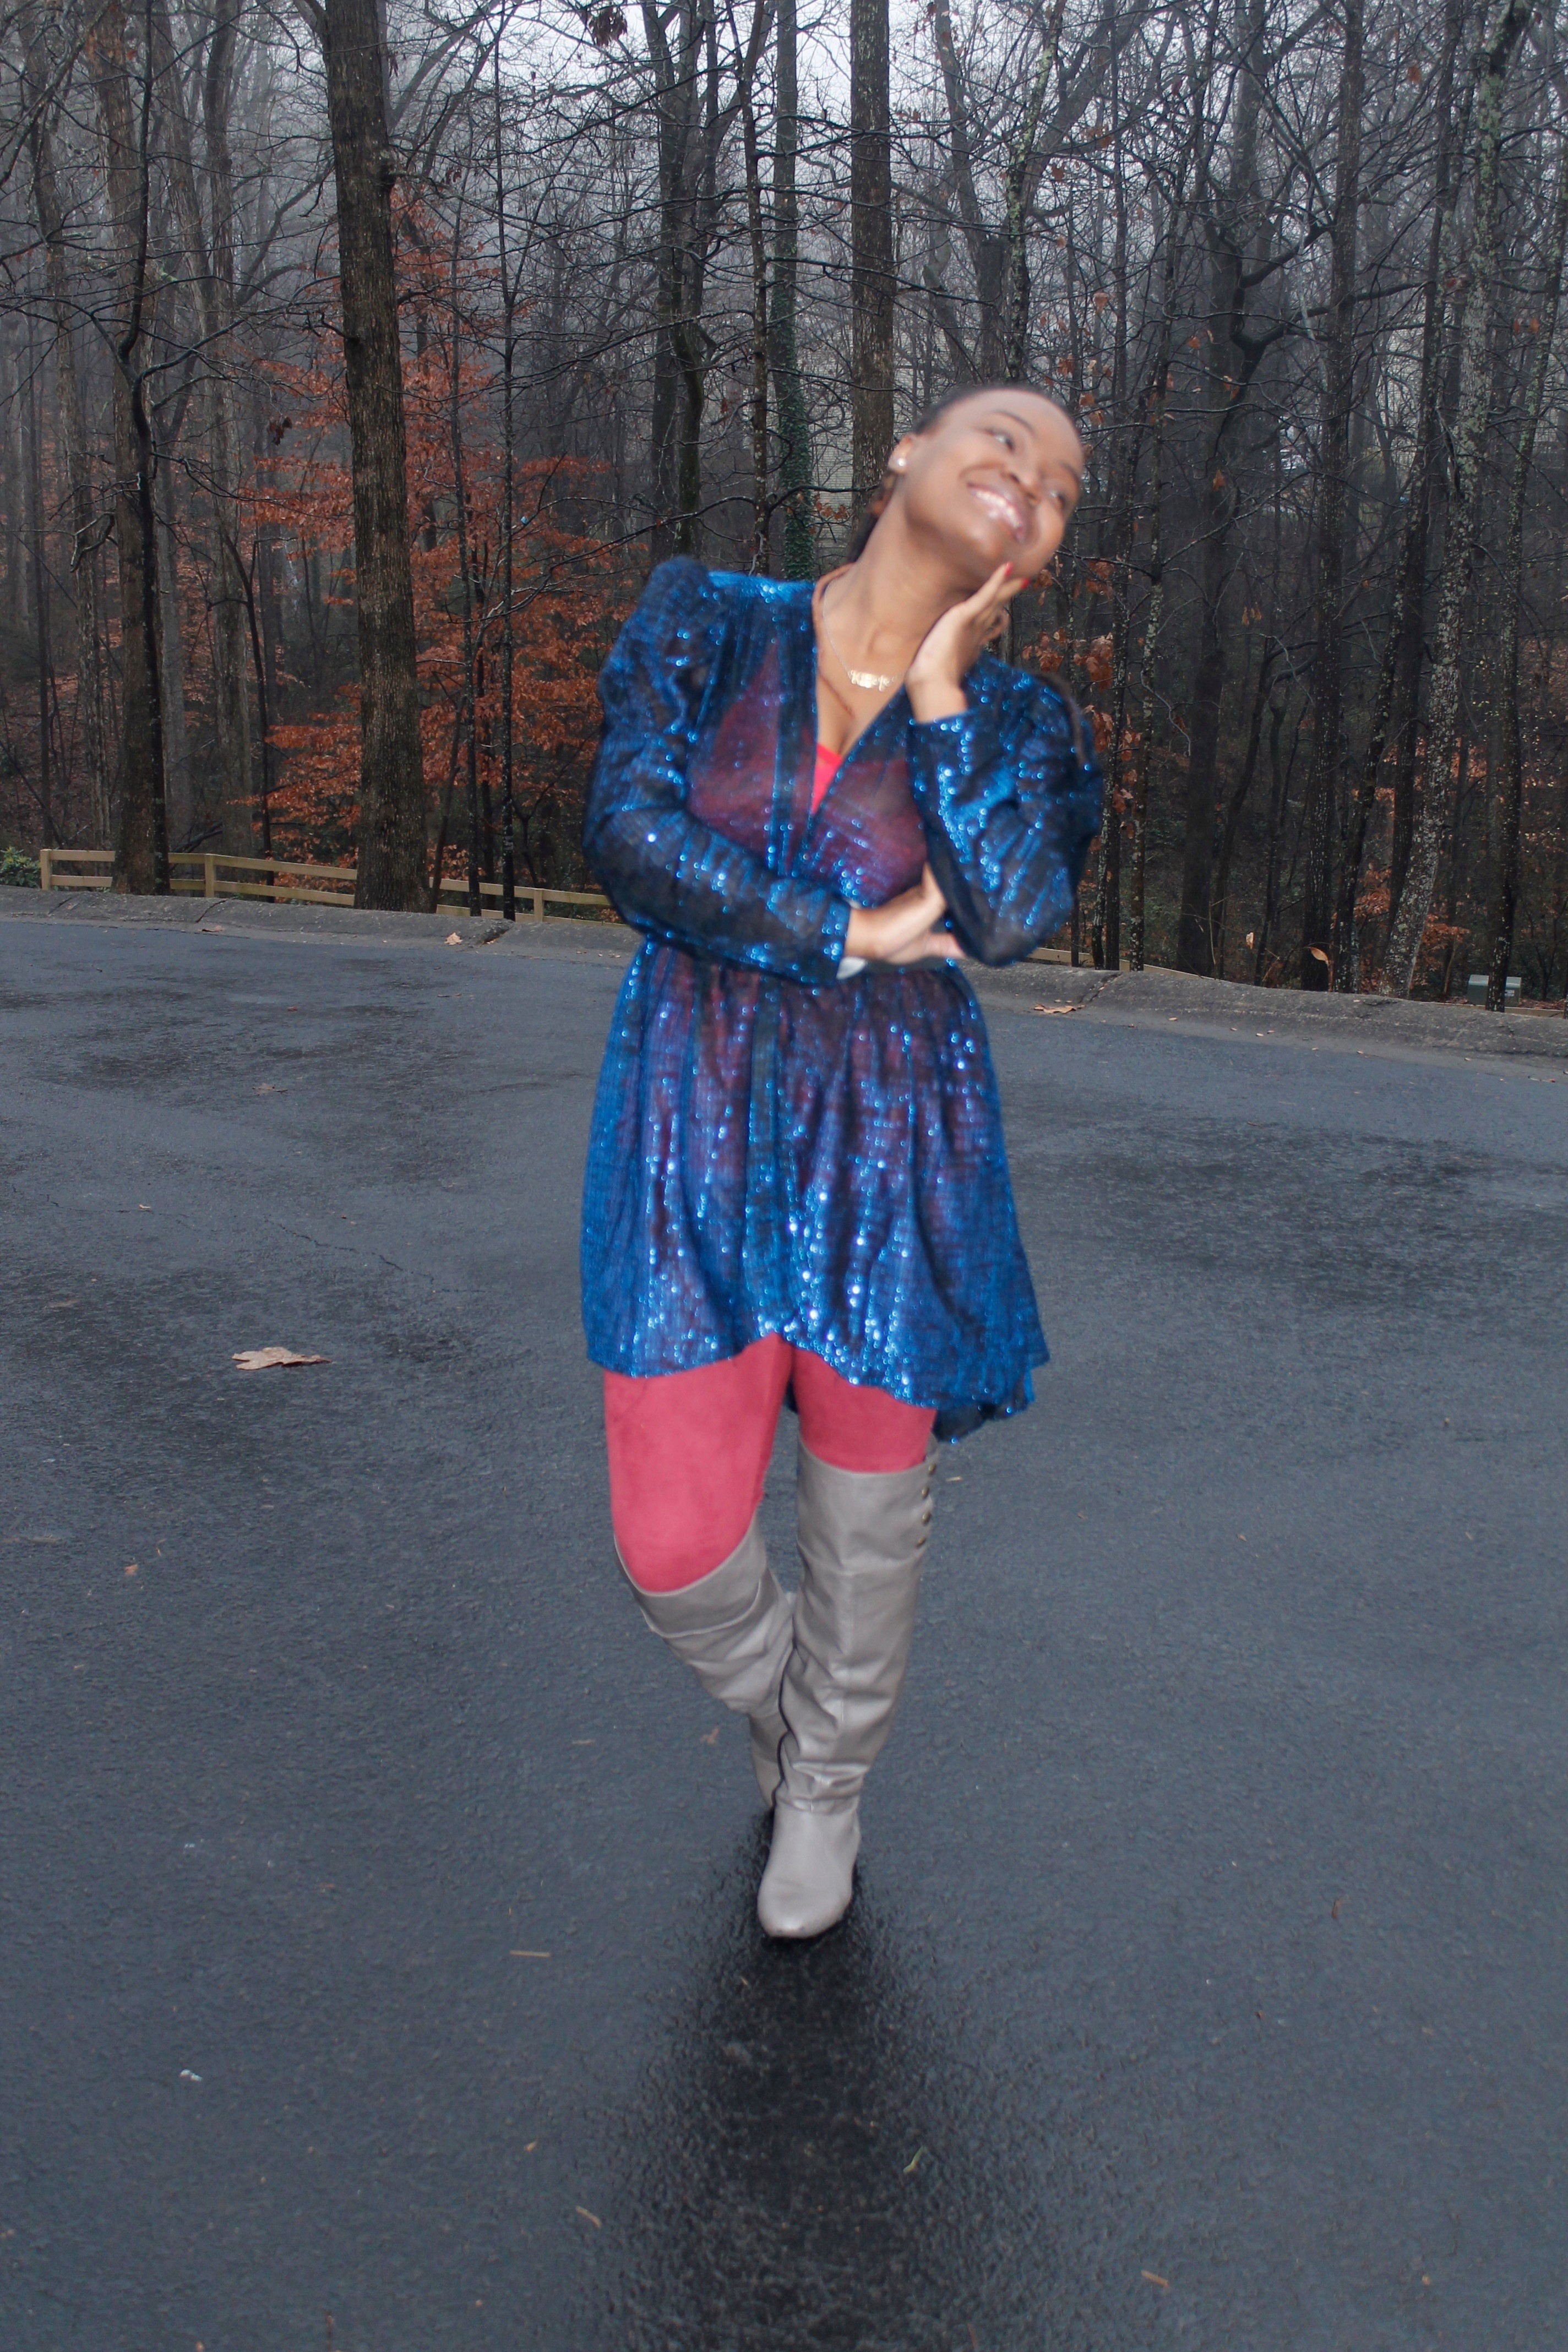 STYLE BOOK: MORE SPARKLES